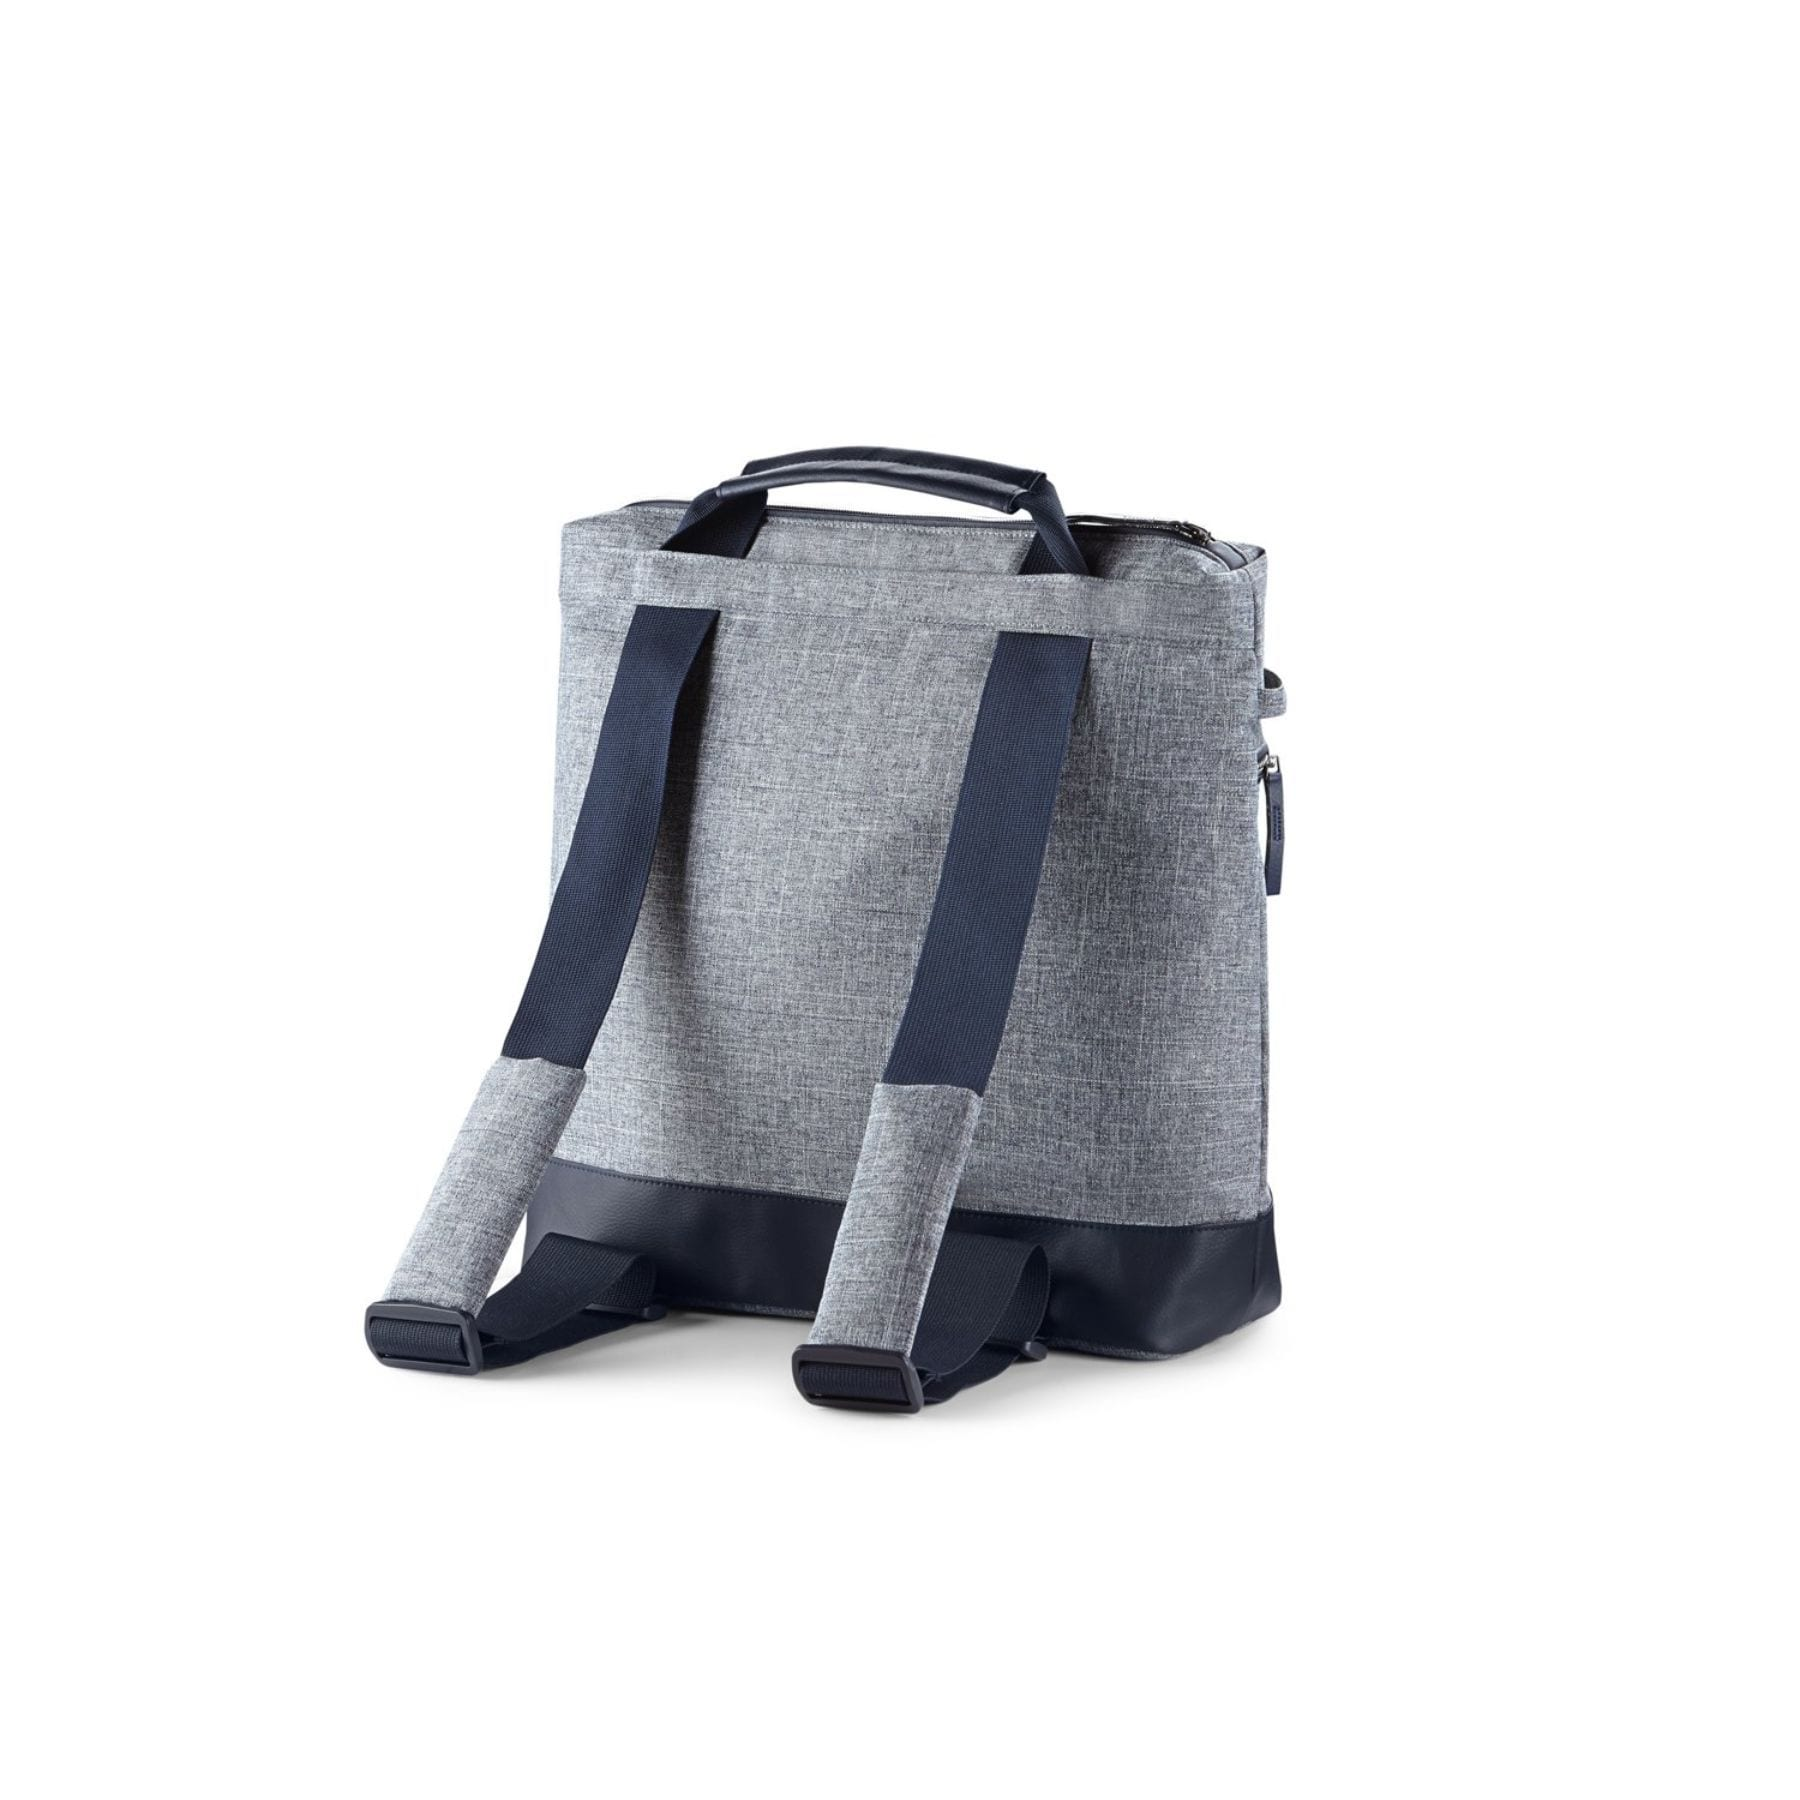 Inglesina Back Bag for Aptica - Niagara Blue